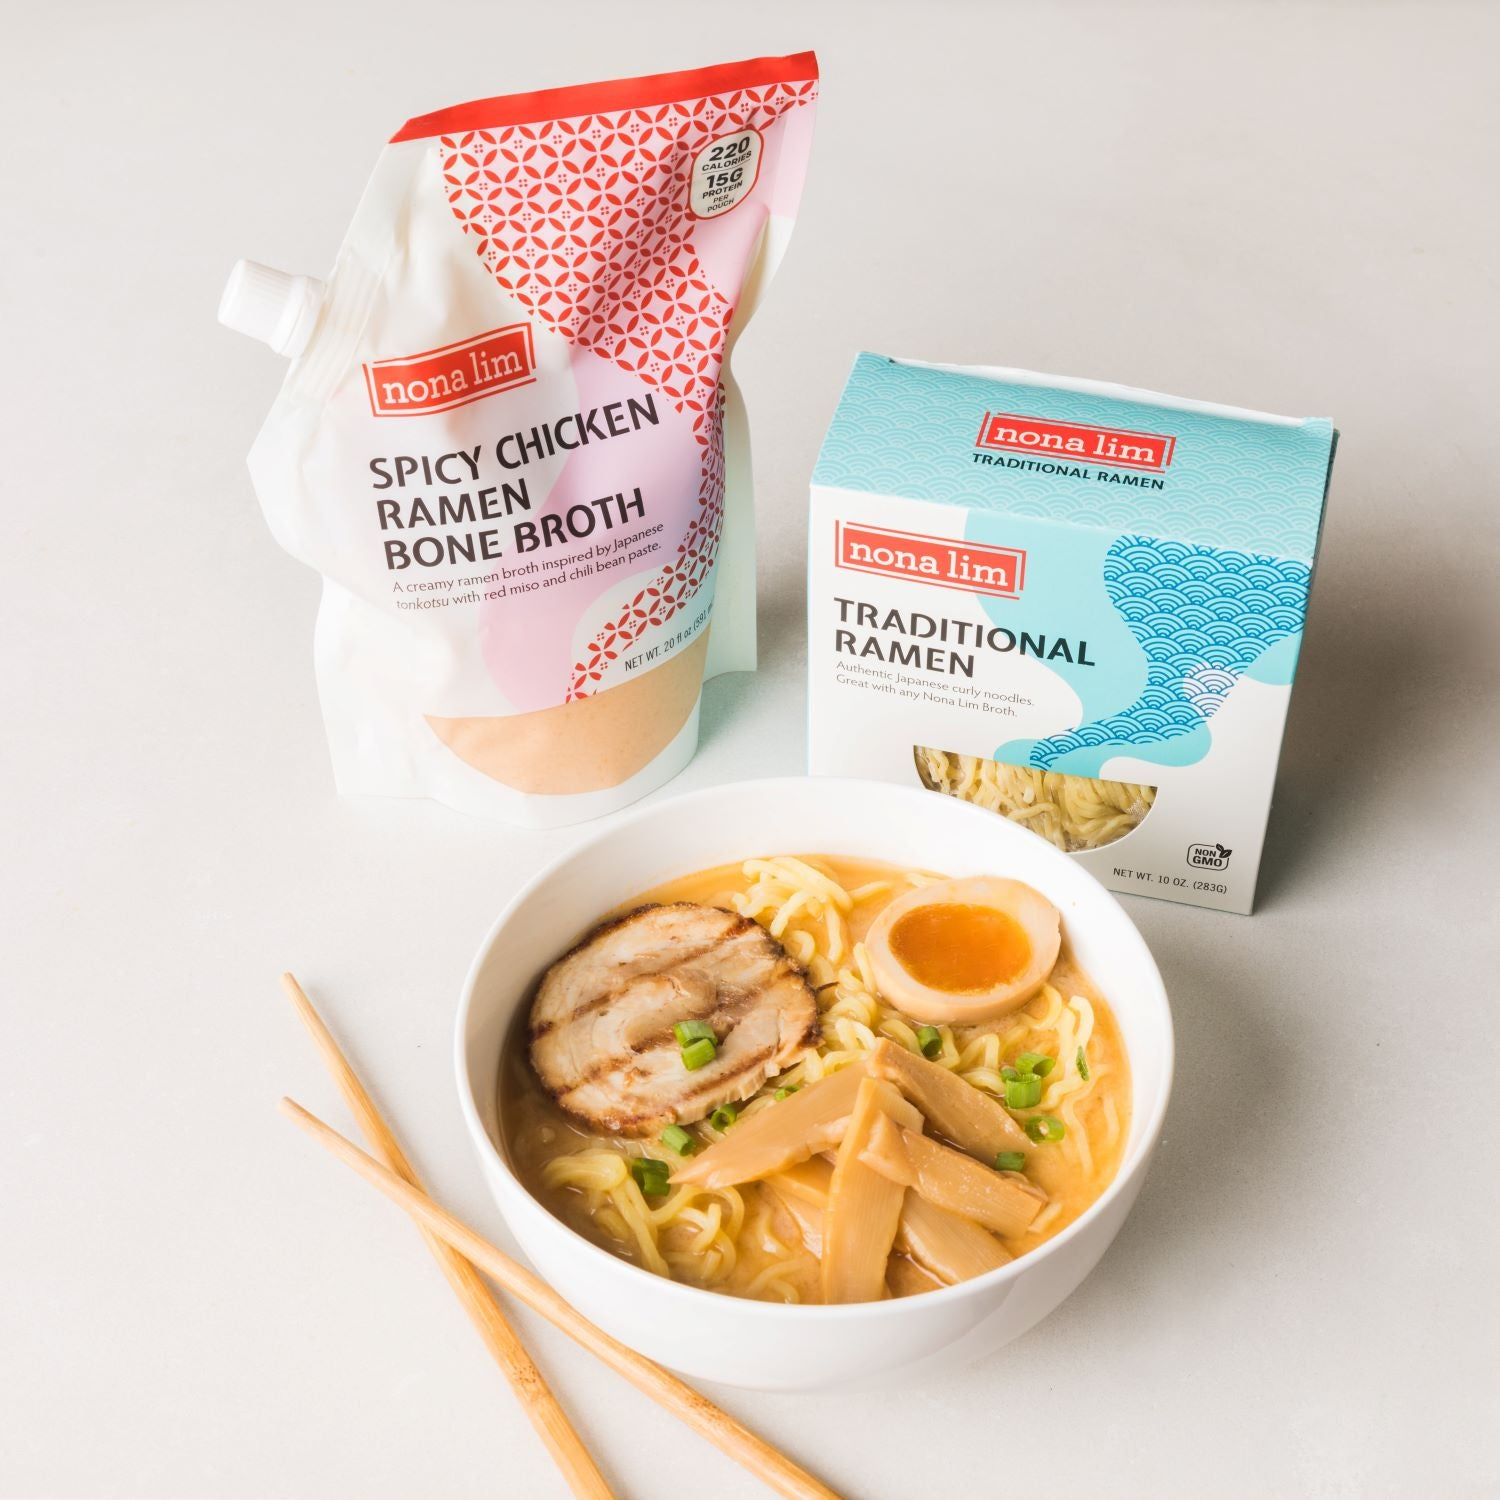 Nona Lim Traditional Ramen with Spicy Chicken Ramen Bone Broth